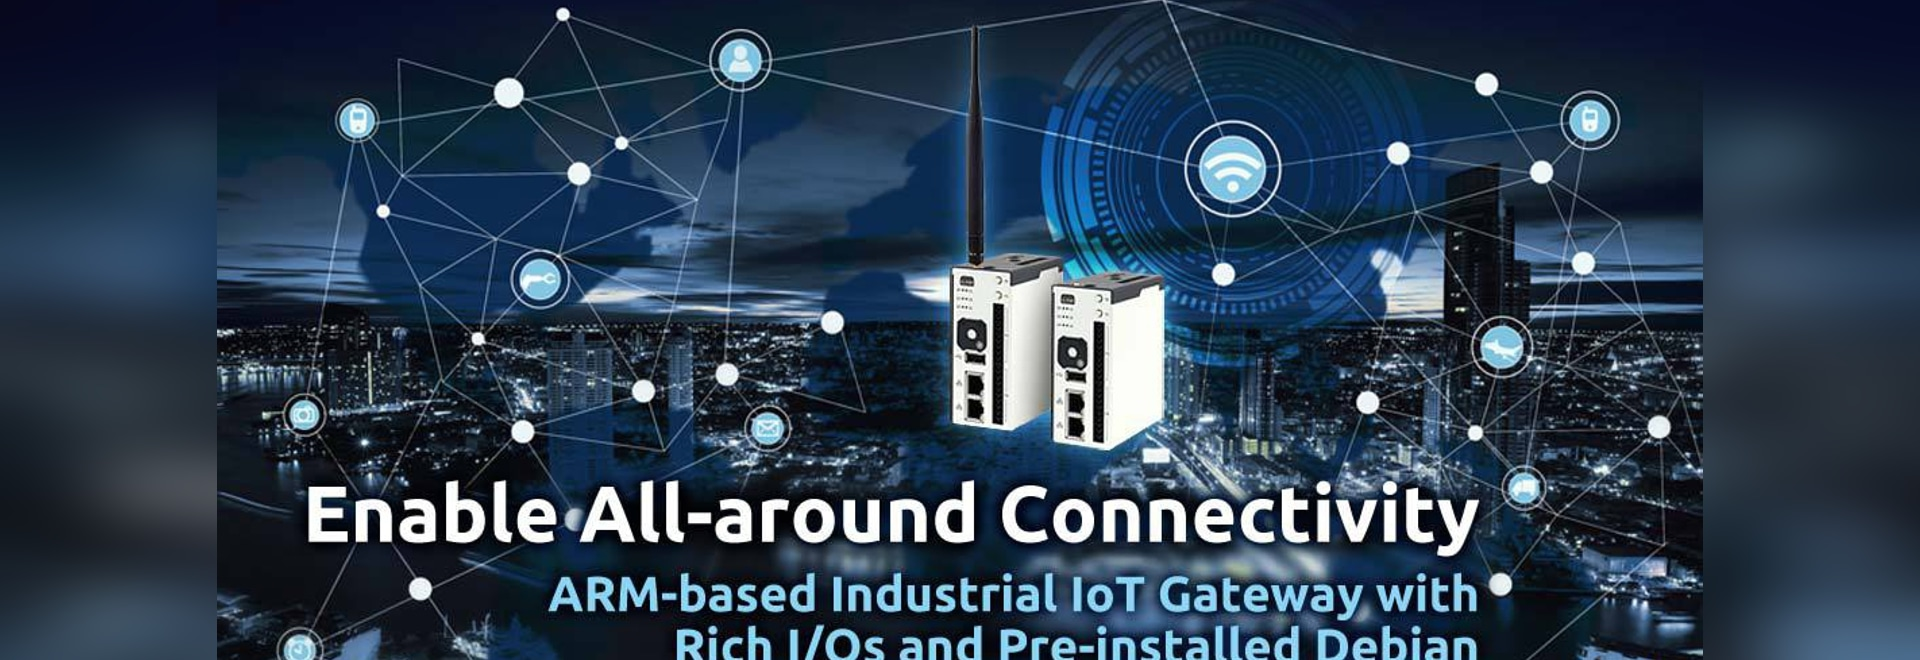 Neousys Announces IGT-30 Series, an Industrial IoT Gateway Optimized for Industry 4.0